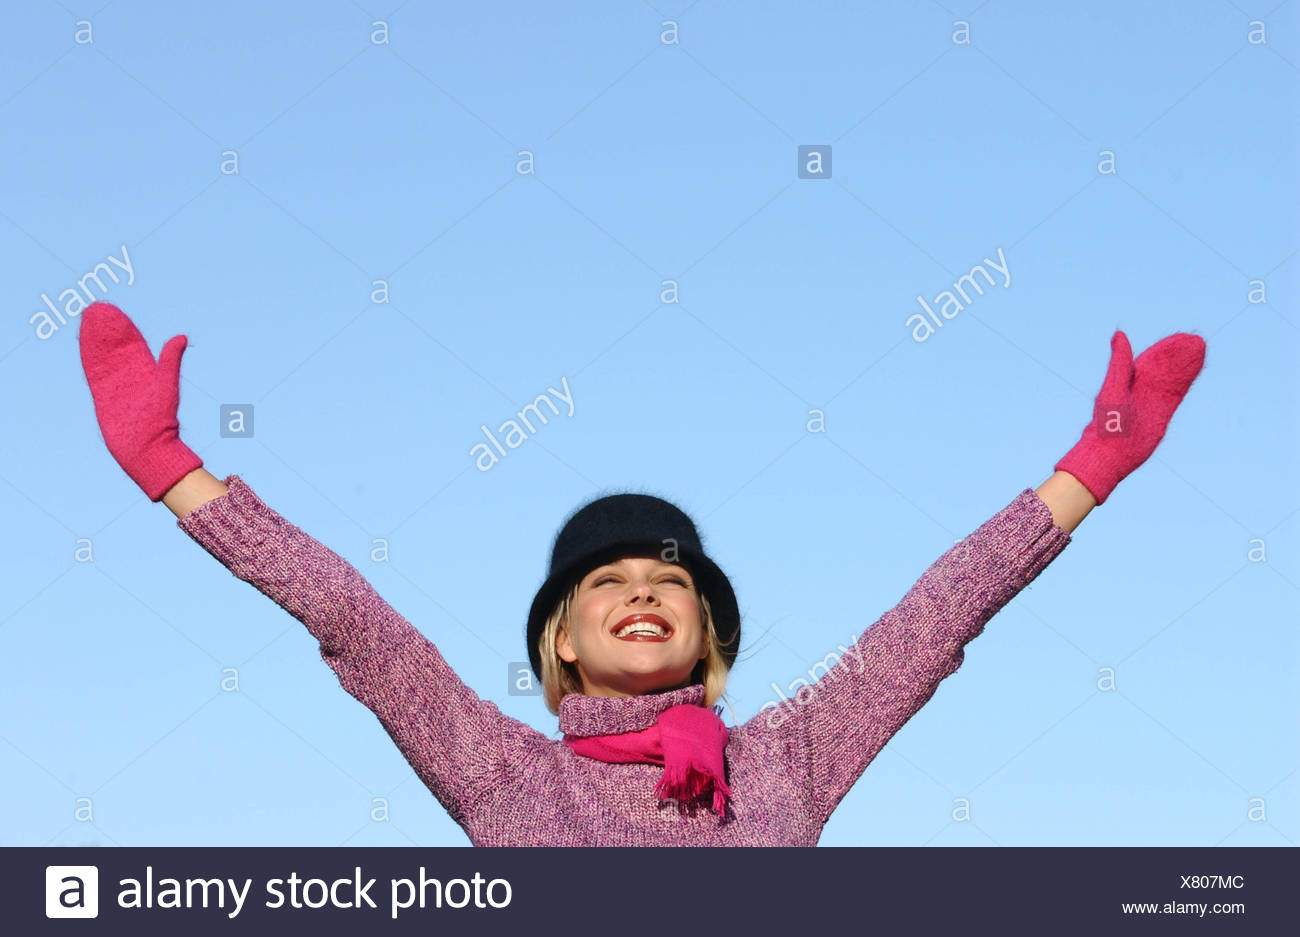 Female blonde hair brown tones of make up wearing black angora hat purple roll neck jumper bright pink scarf and mittens arms - Stock Image